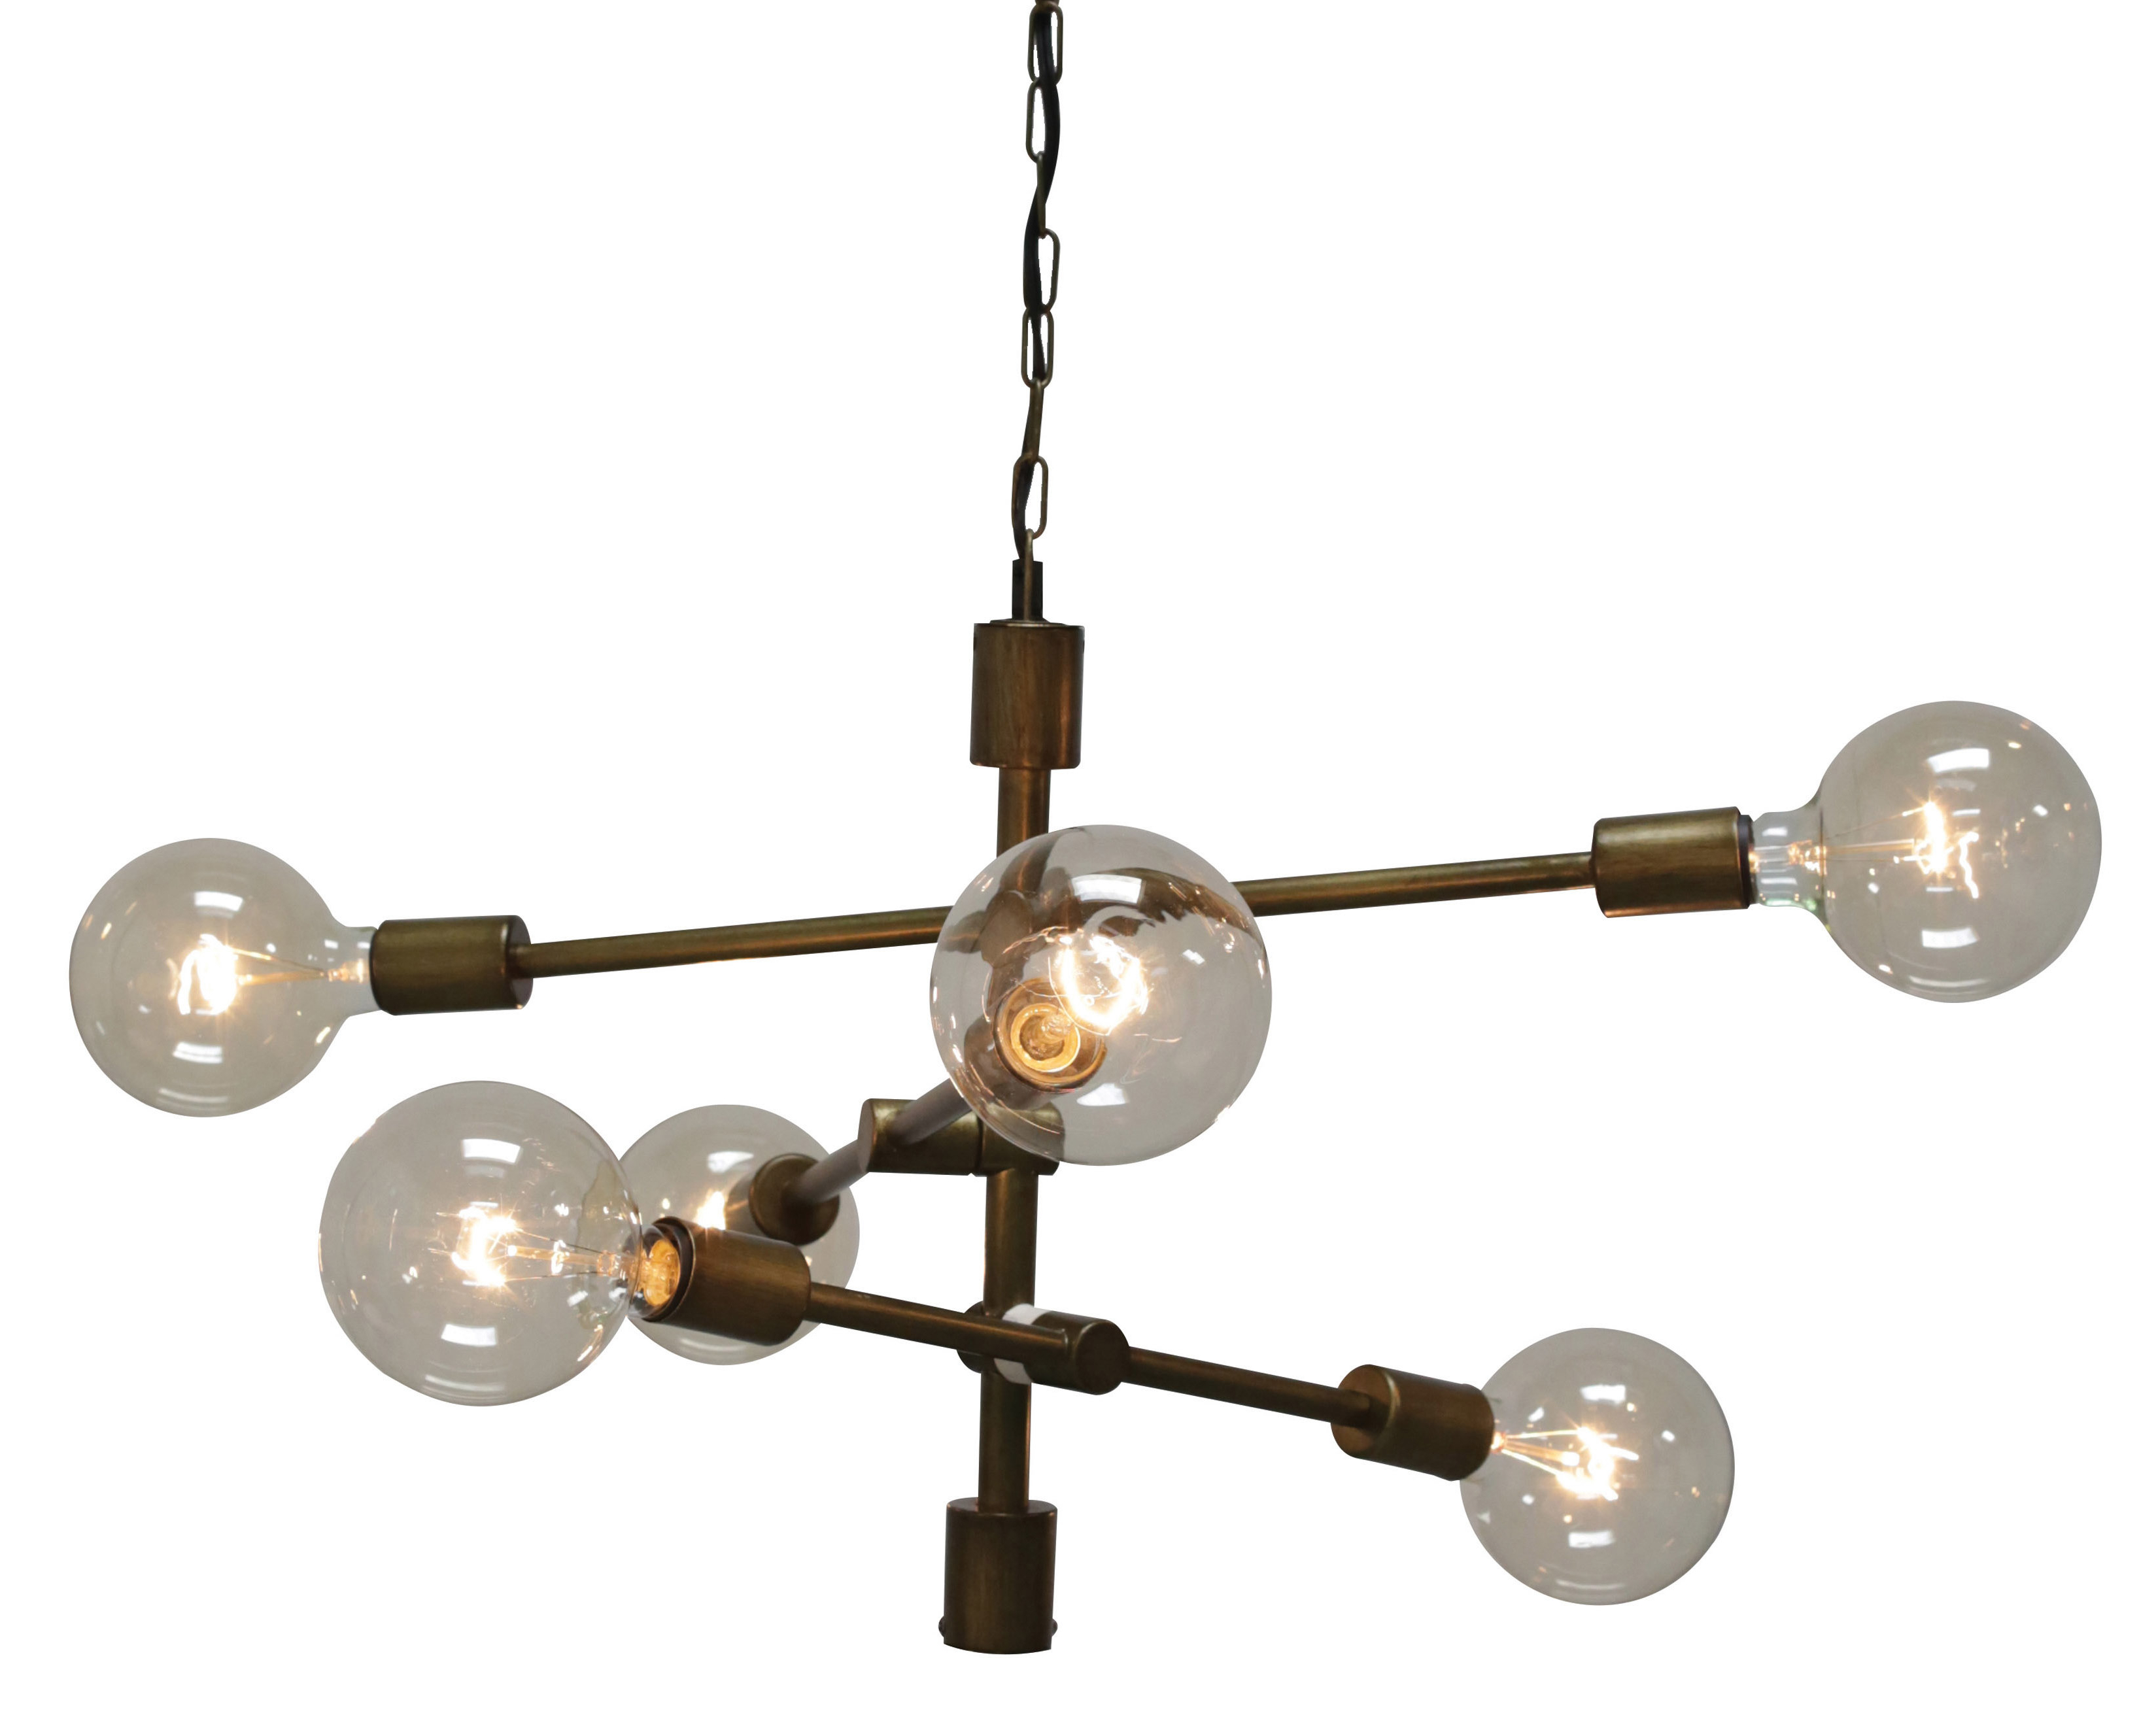 Latest Eladia 6 Light Sputnik Chandeliers Regarding Wunsch 6 Light Sputnik Chandelier (View 22 of 25)